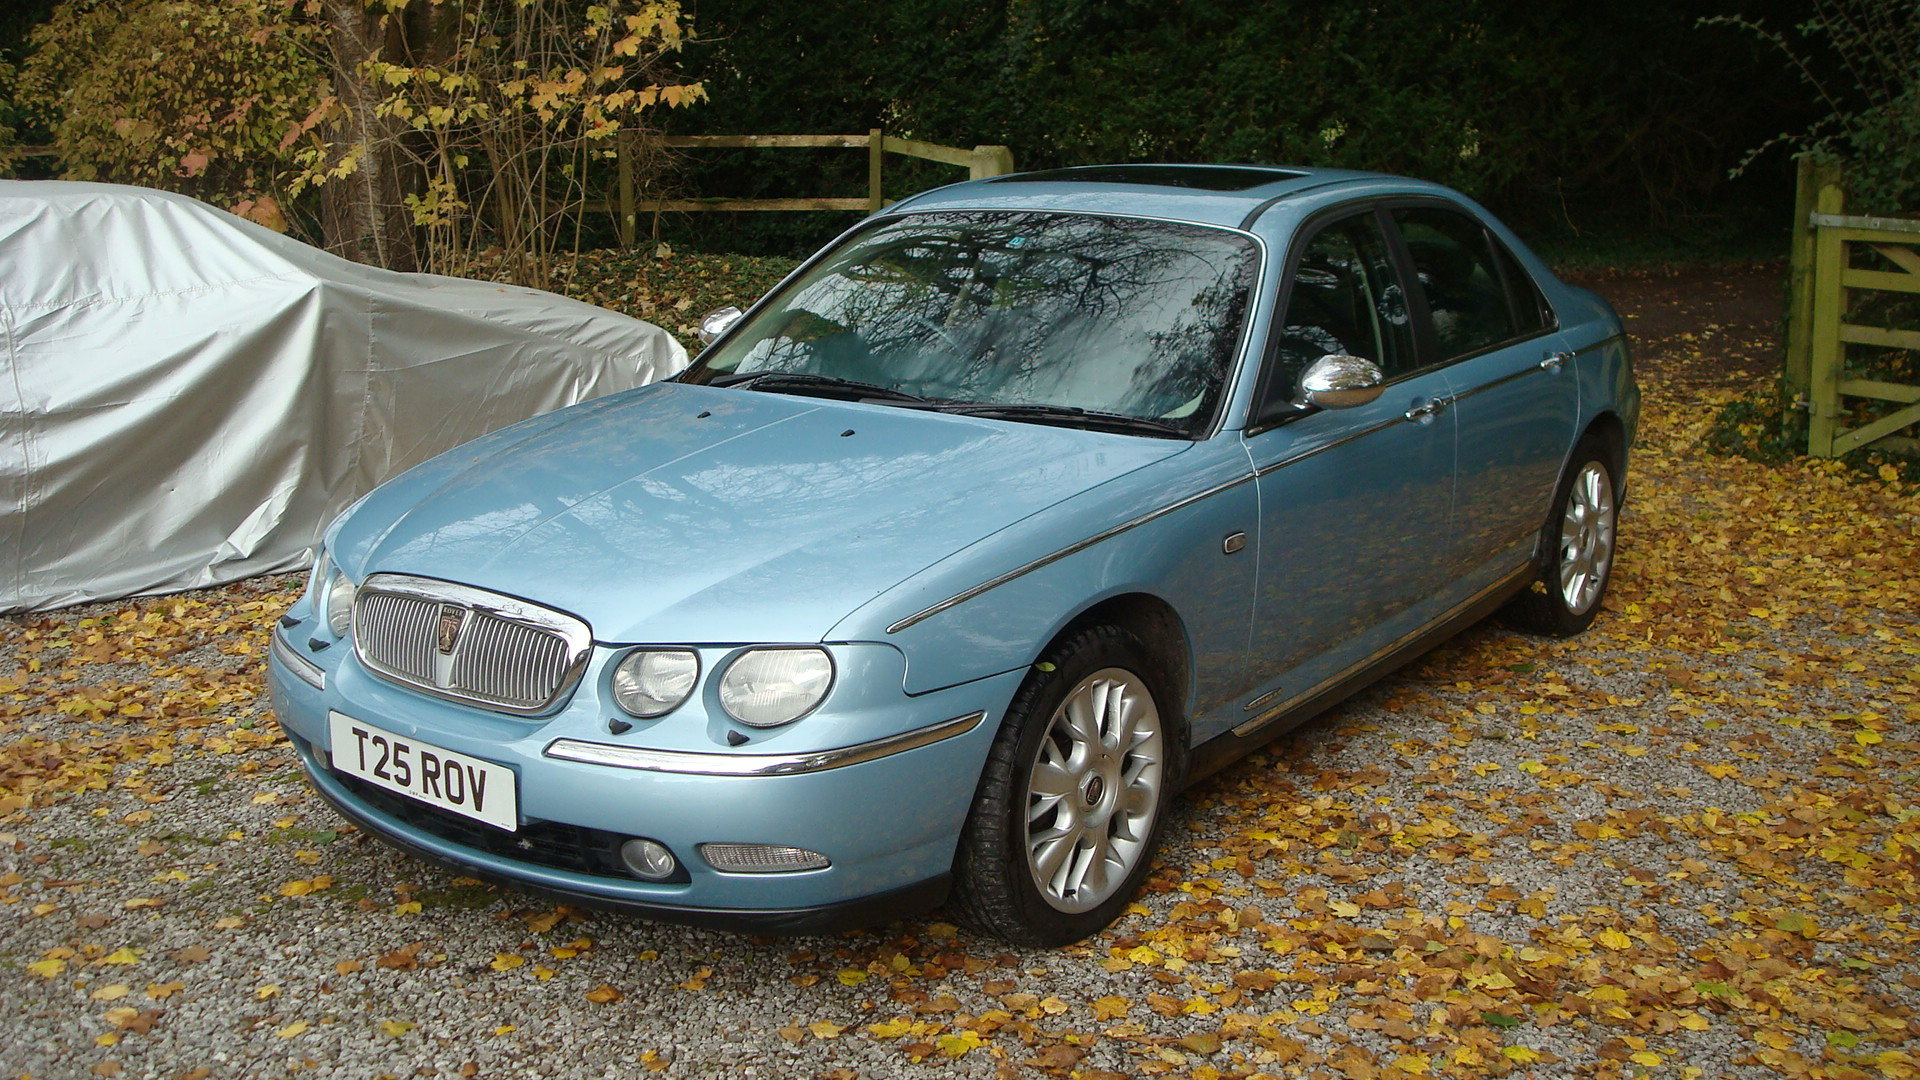 1999 Rover 75 2.5 V6 Connoisseur SE For Sale (picture 2 of 6)